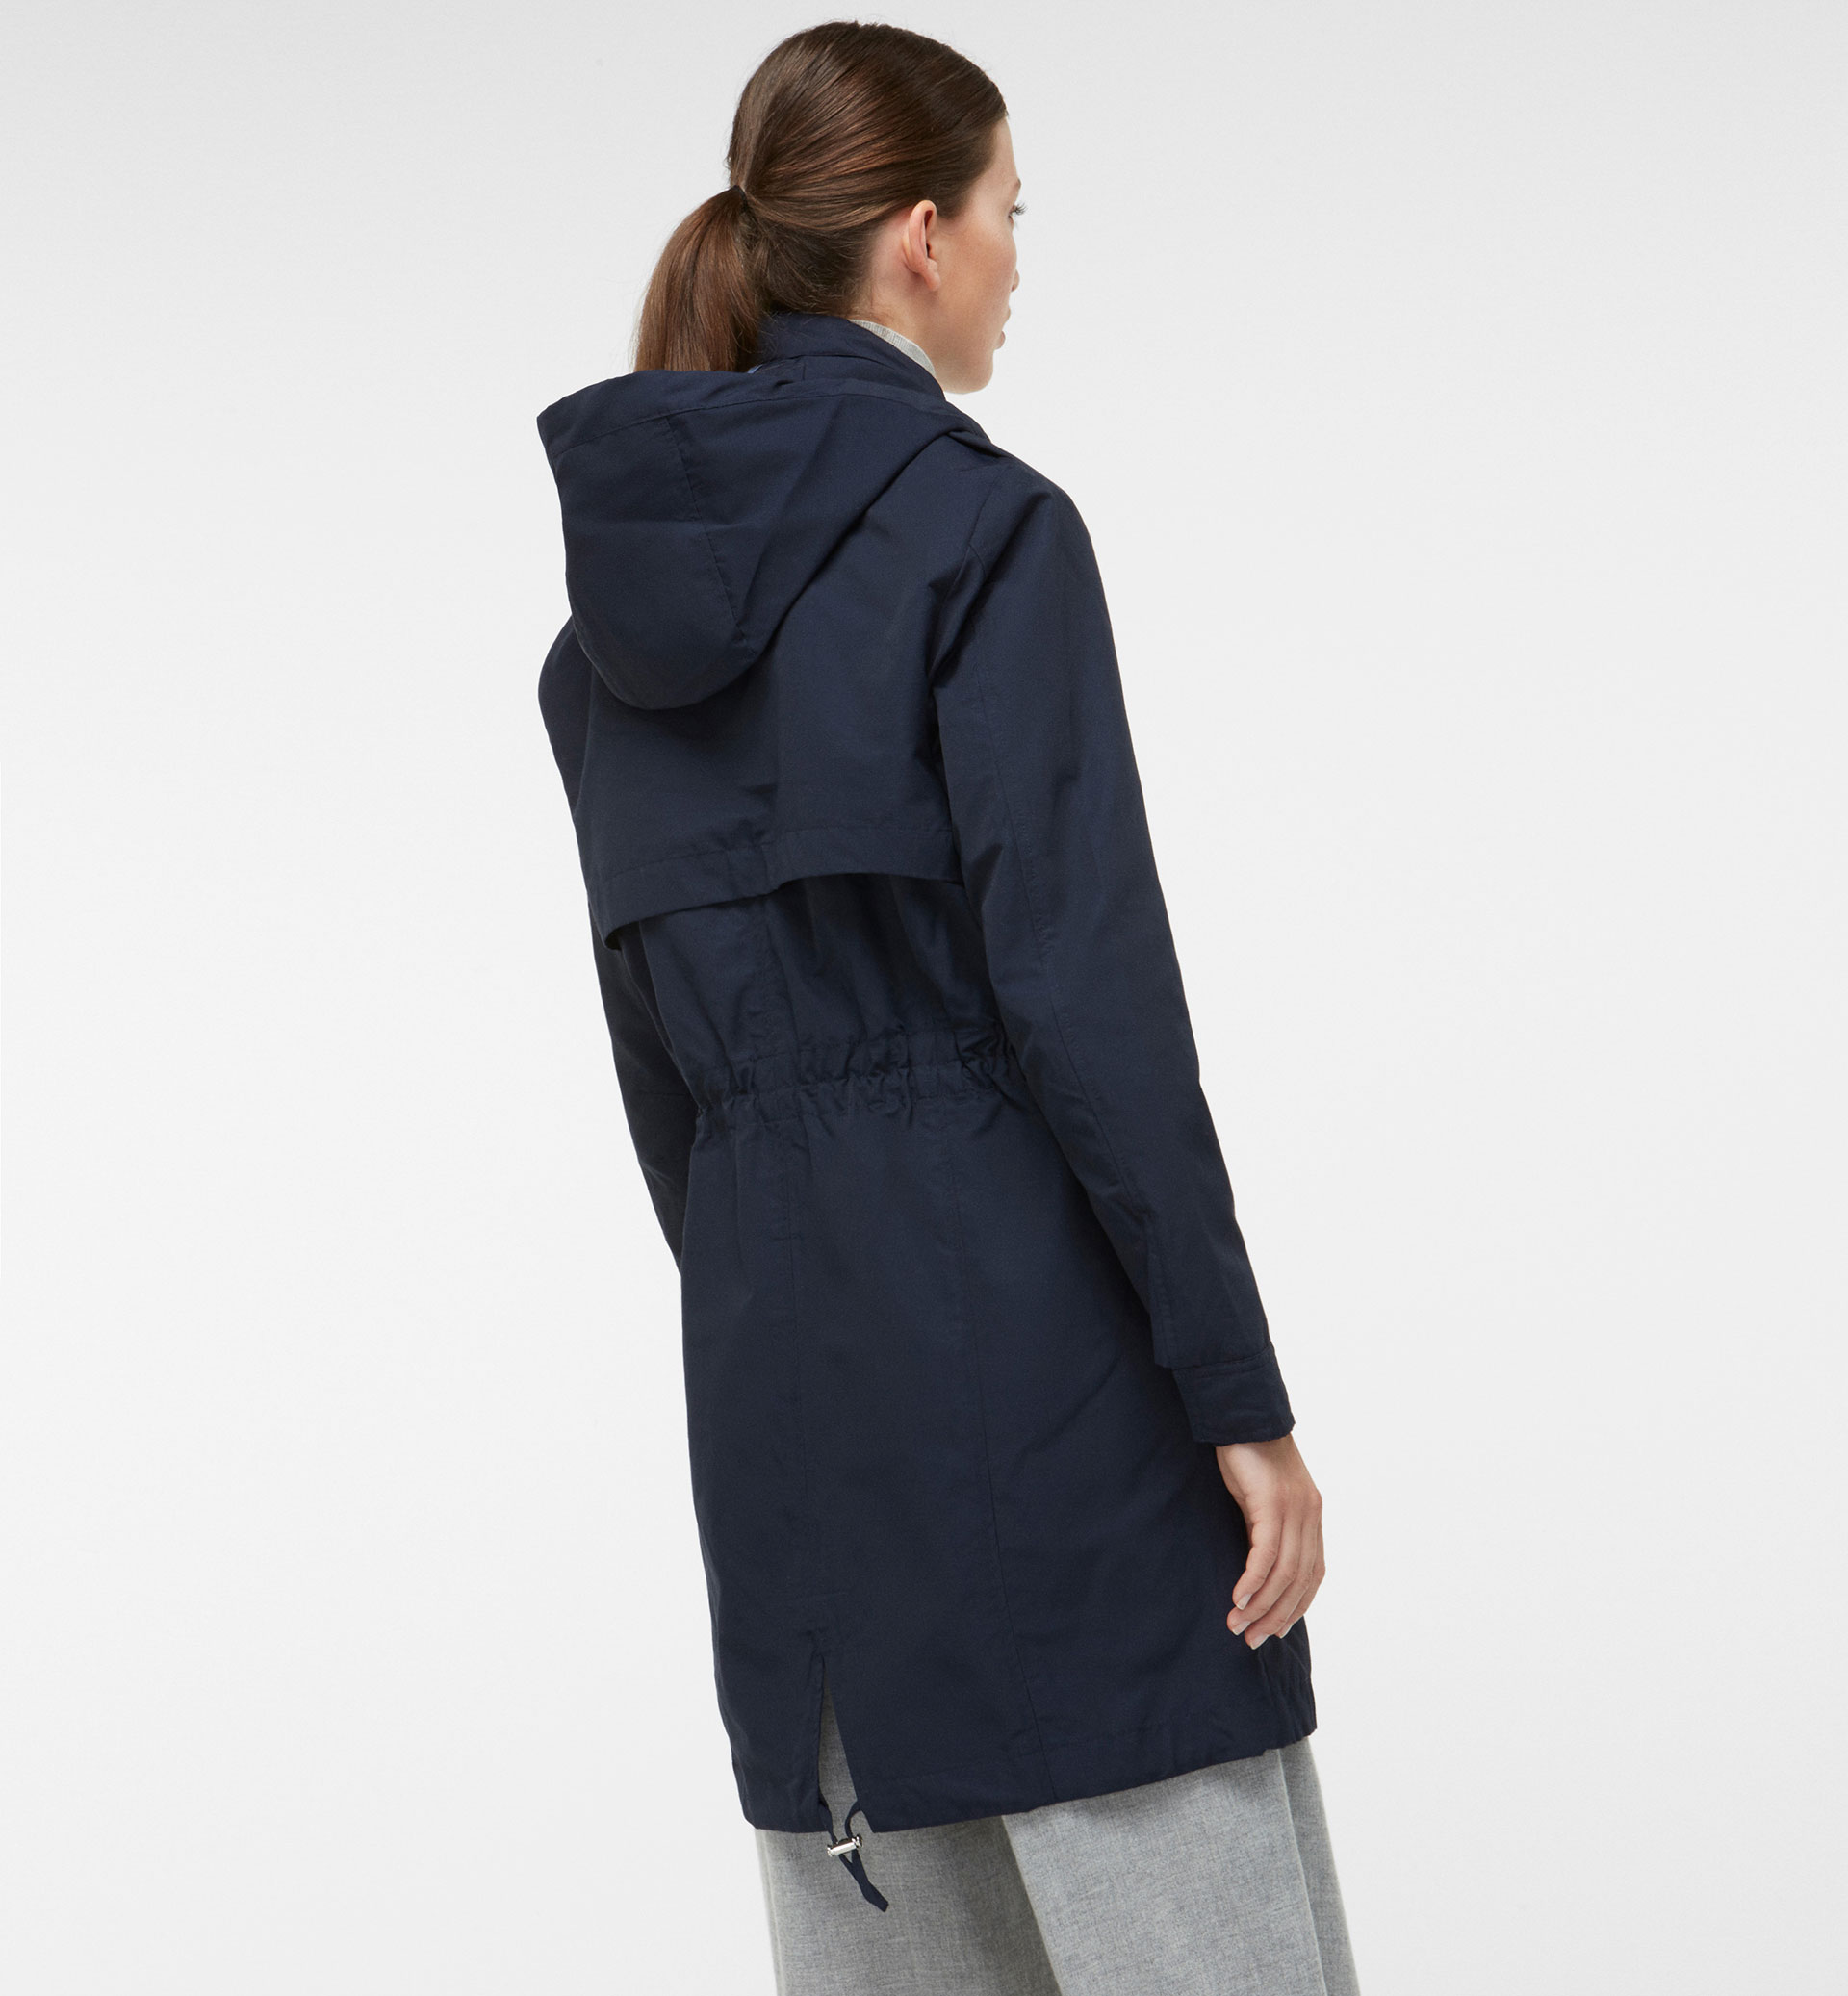 NAVY BLUE PARKA WITH DETACHABLE LINING DETAIL